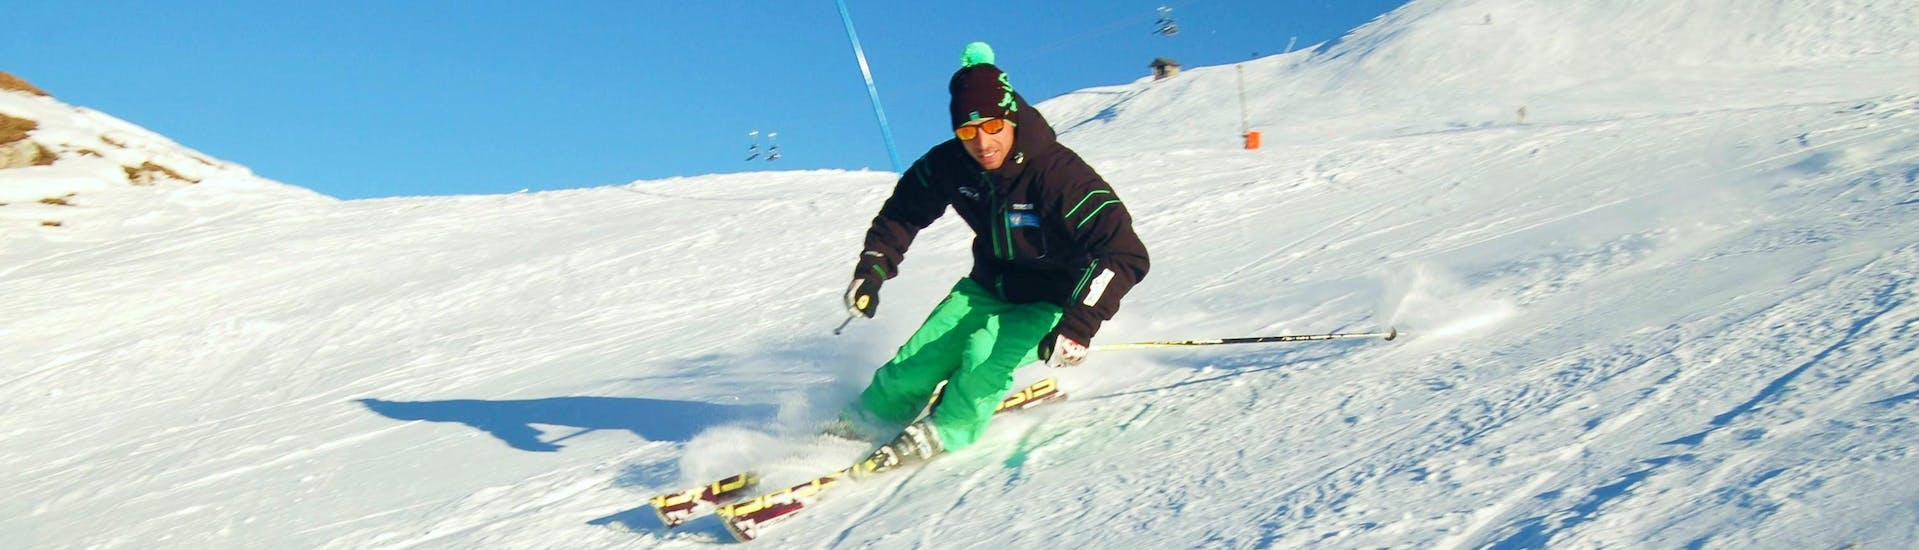 private-ski-lessons-for-adults-snow-attitude-champery-hero